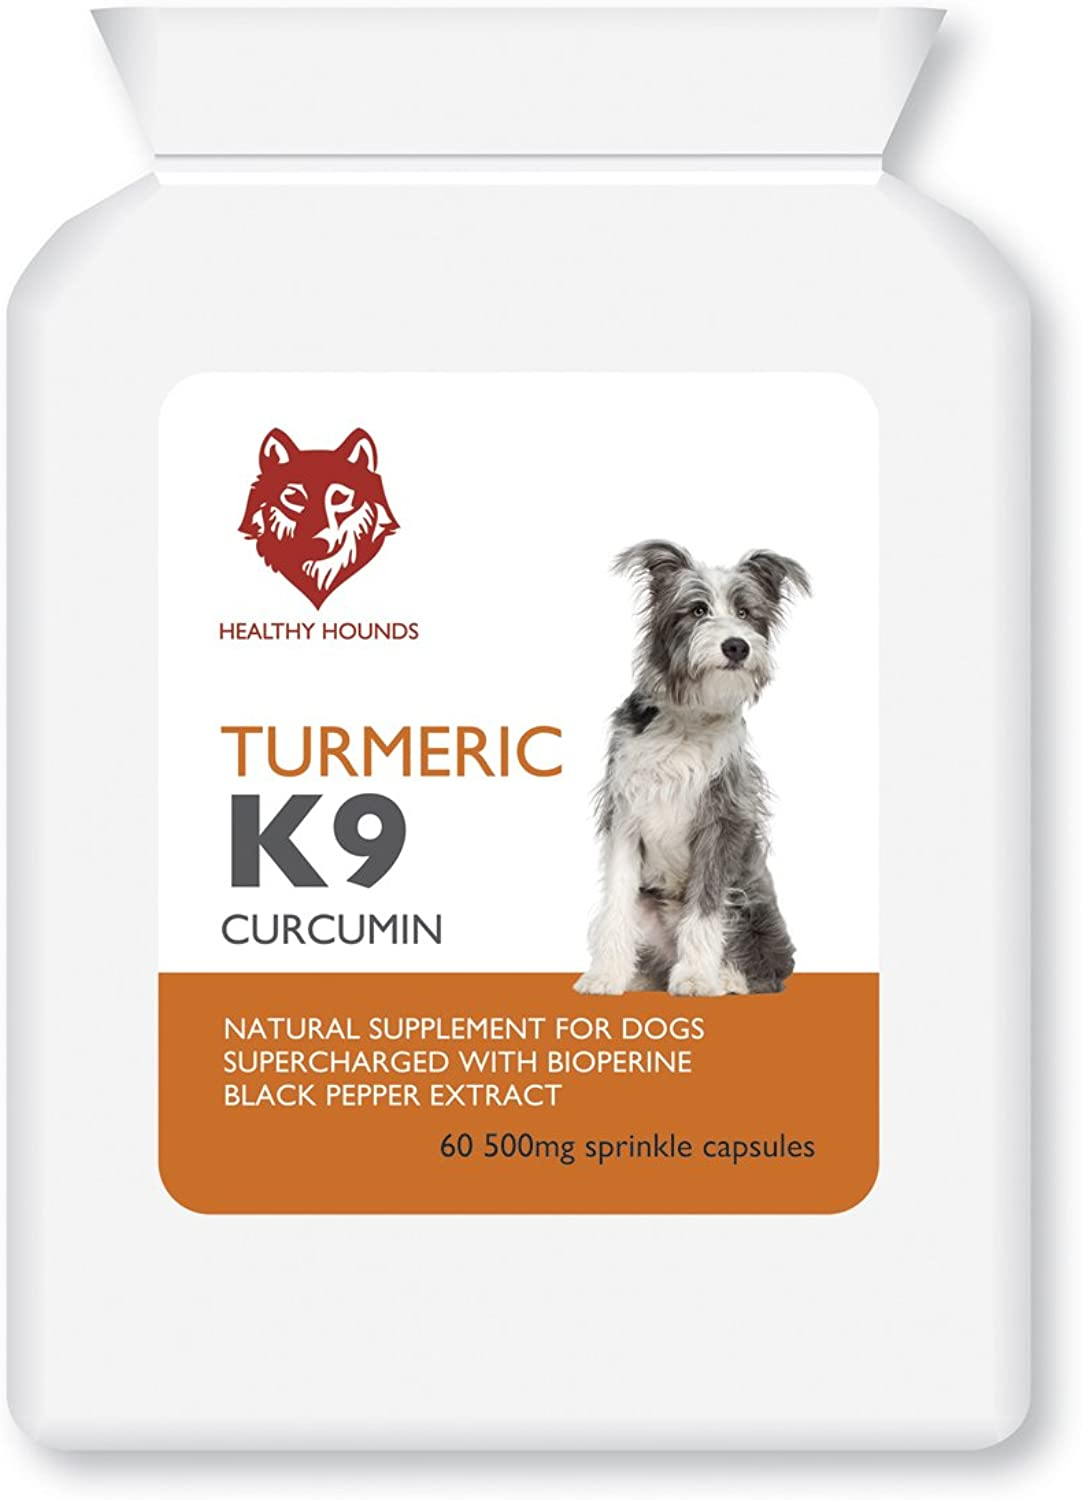 Healthy Hounds Organic Turmeric Curcumin for Dogs and Pets 500mg Equivalent to 10 000mg Whole Turmeric with Active Bioperine Black Pepper extract   Joint and Hips   60 Sprinkle caps   UK product